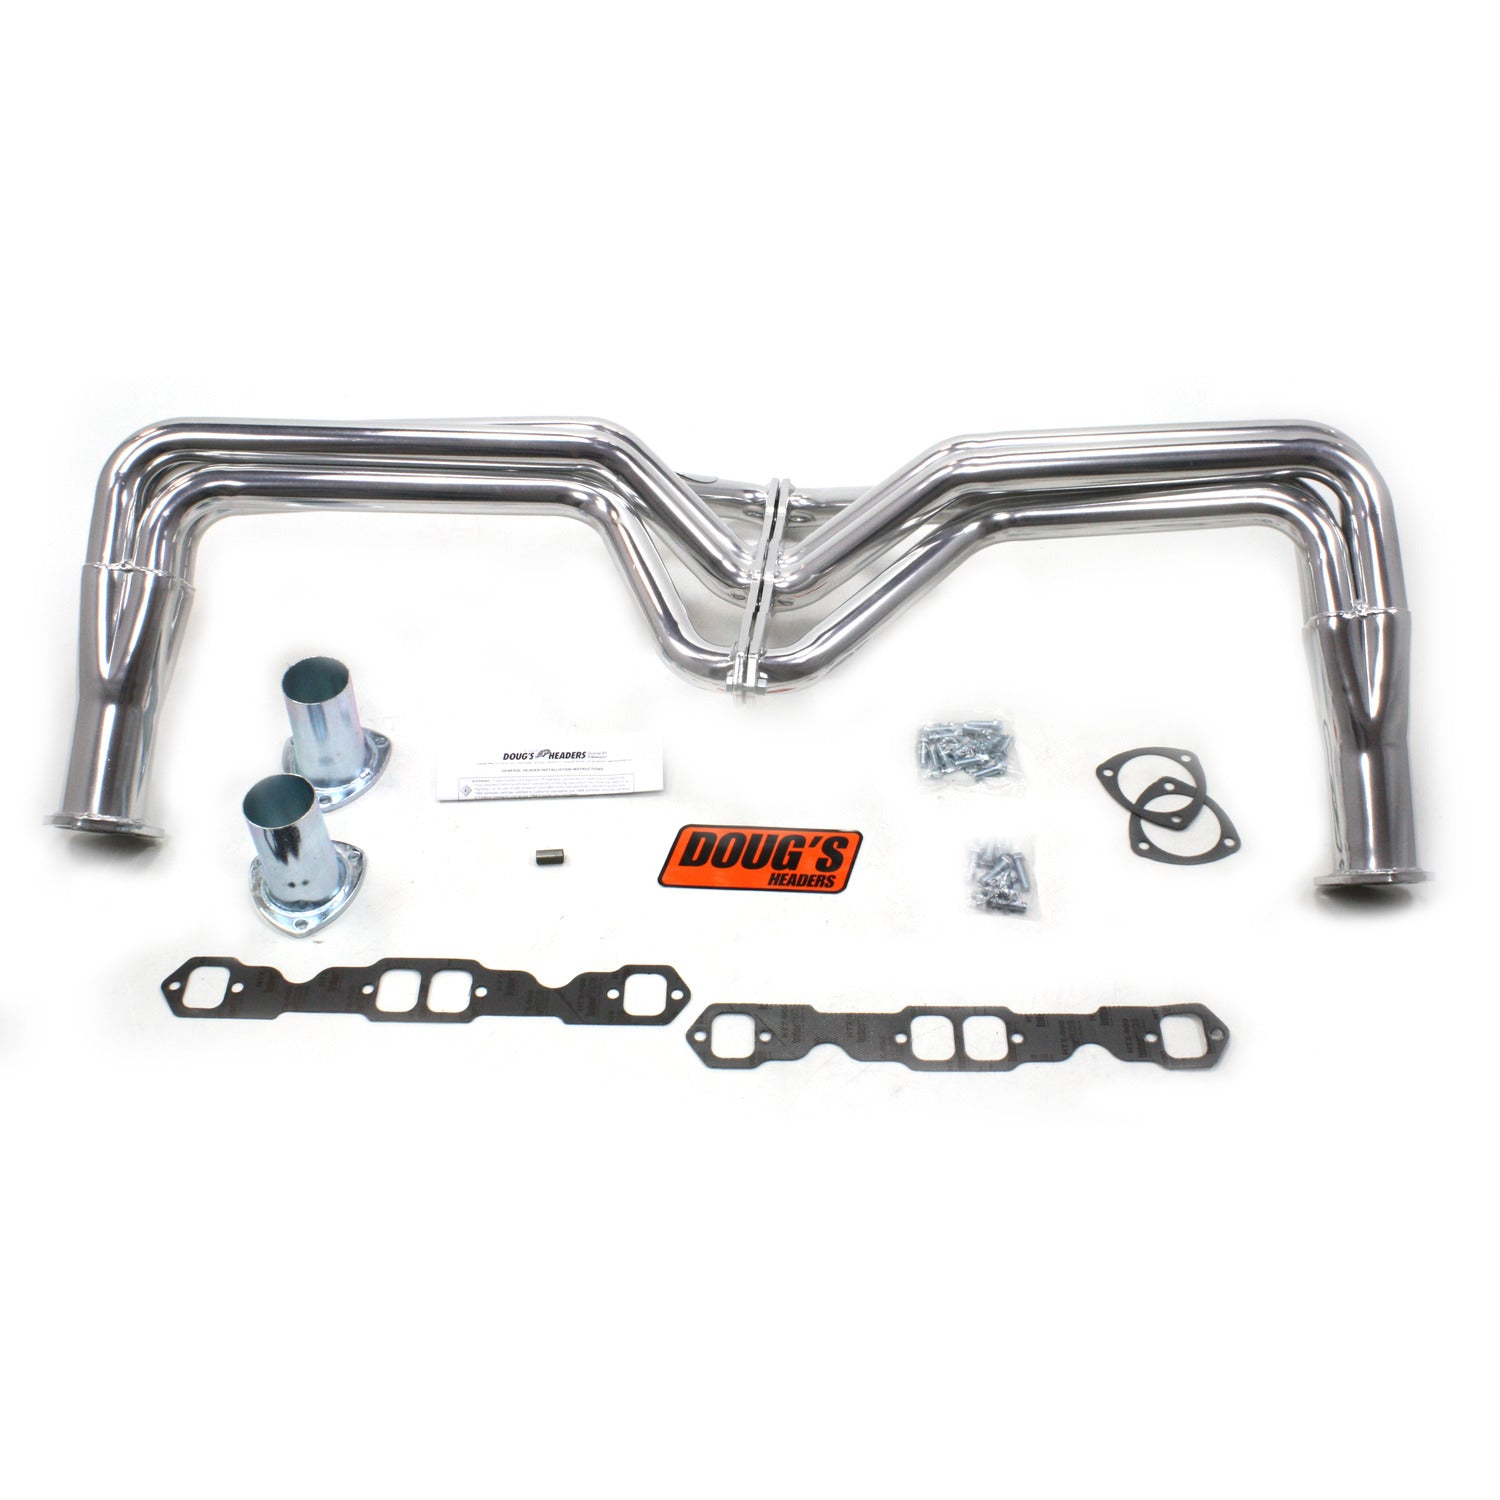 "Doug's Headers D355 1 3/4"" 4-Tube Full Length Header Chevrolet Pass Small Block Chevrolet 55-57 Metallic Ceramic Coating"